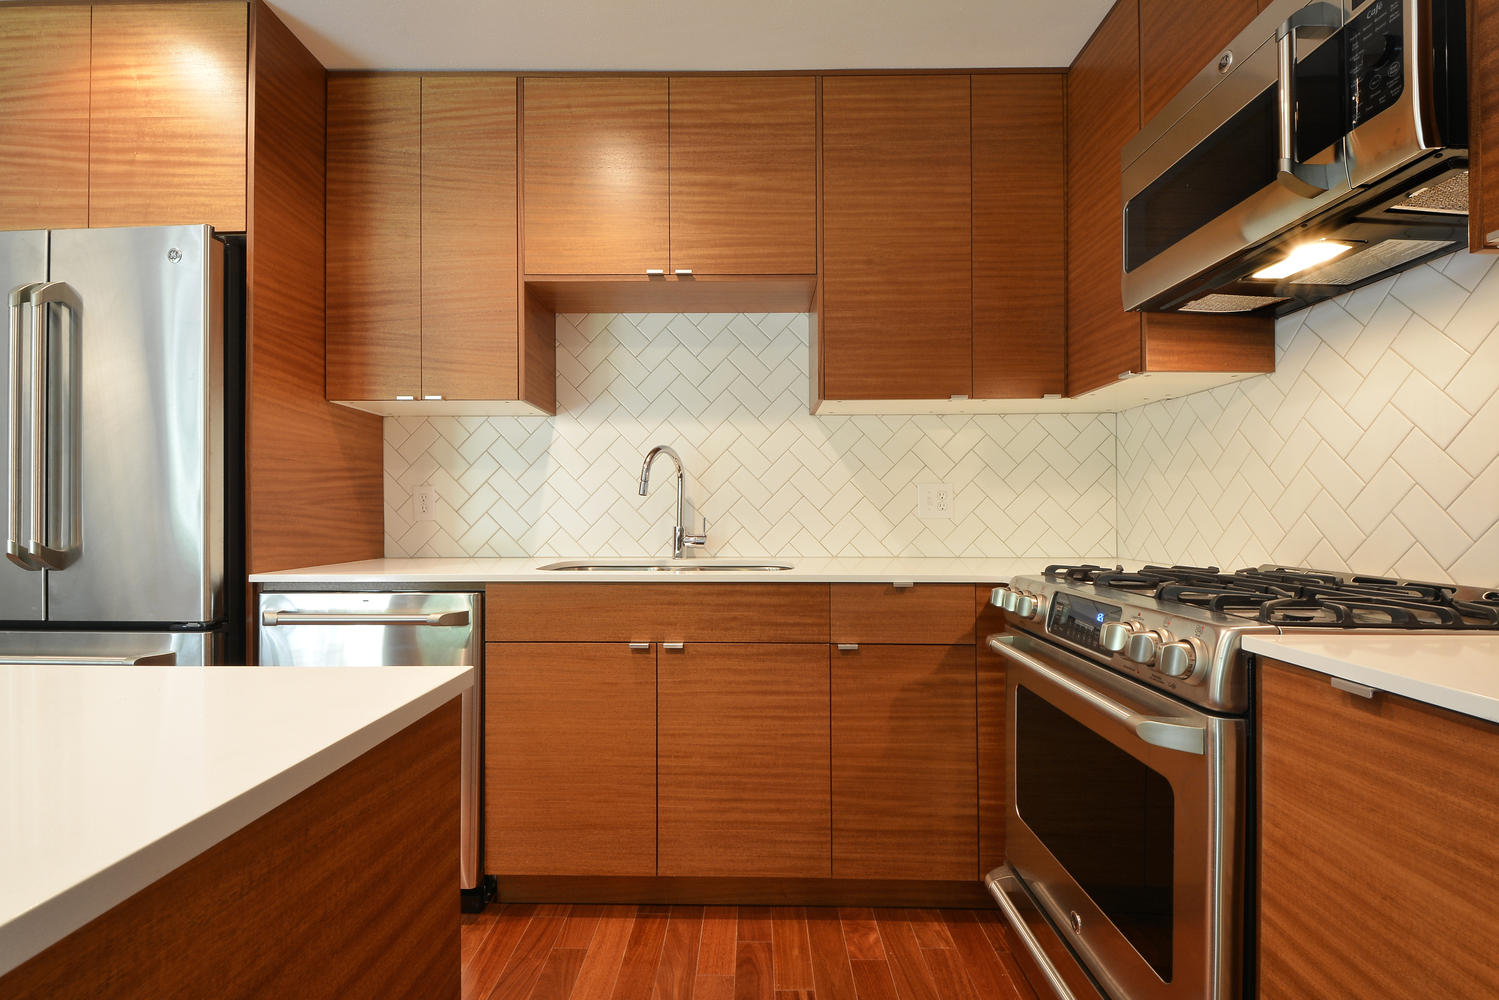 6704 Kings Point West-large-015-Kitchen and Breakfast 371-1499x1000-72dpi.jpg